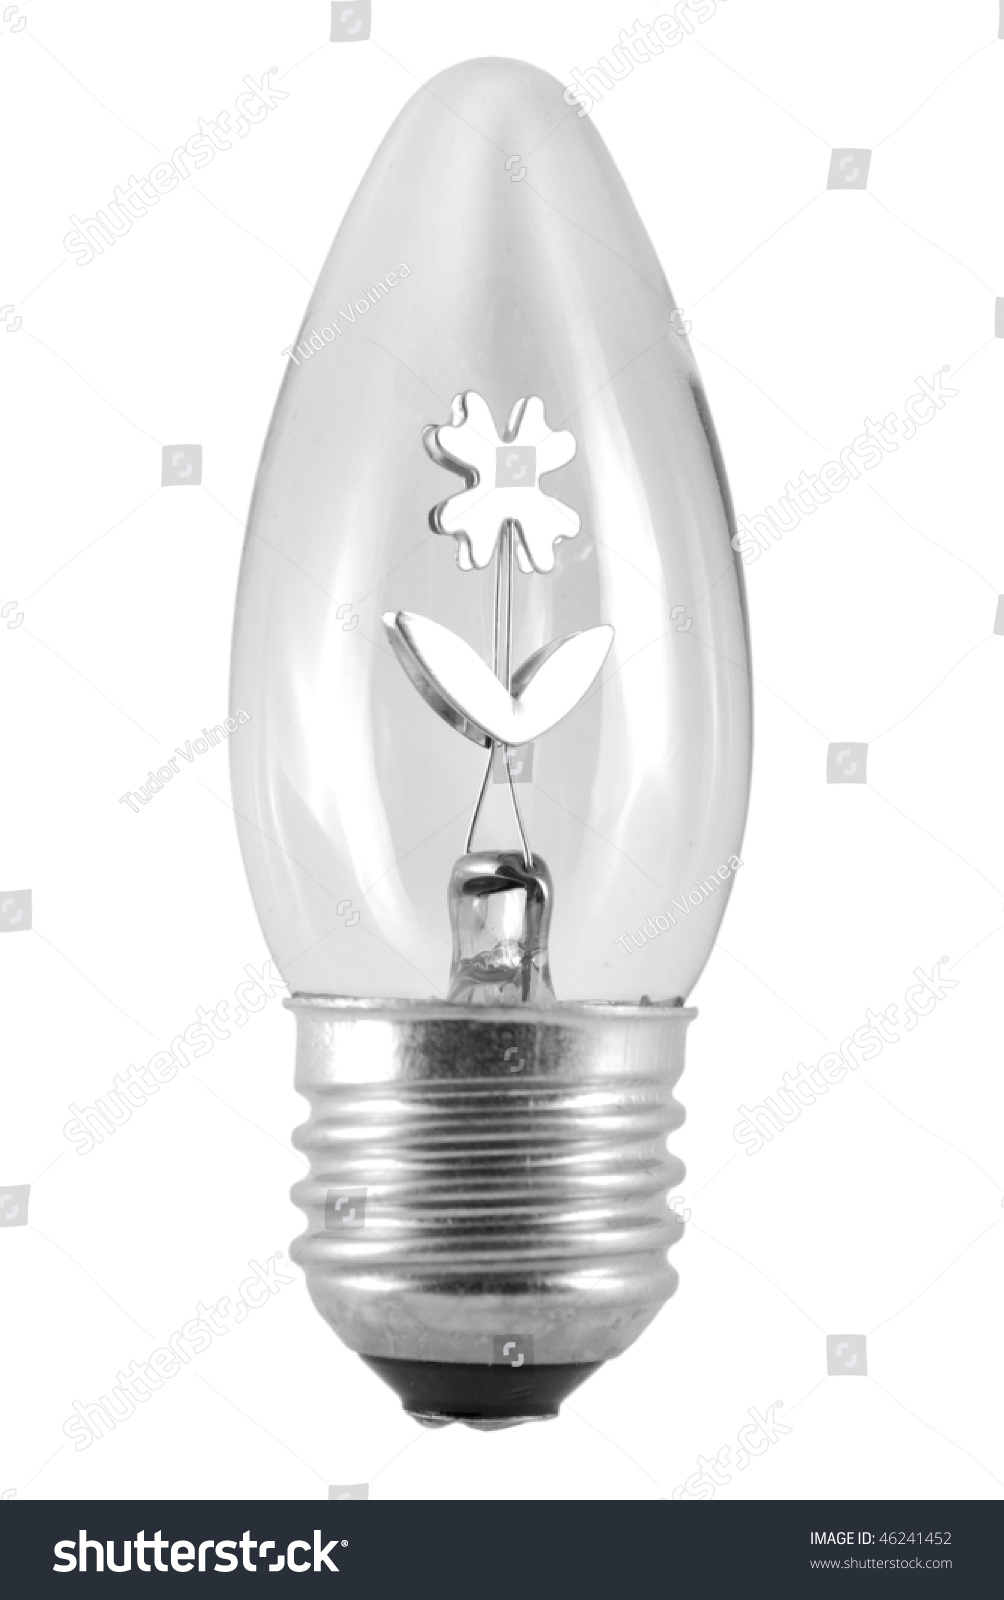 Night Light Bulb With Normal Thread Isolated On White Background With Inside Reflection Stock